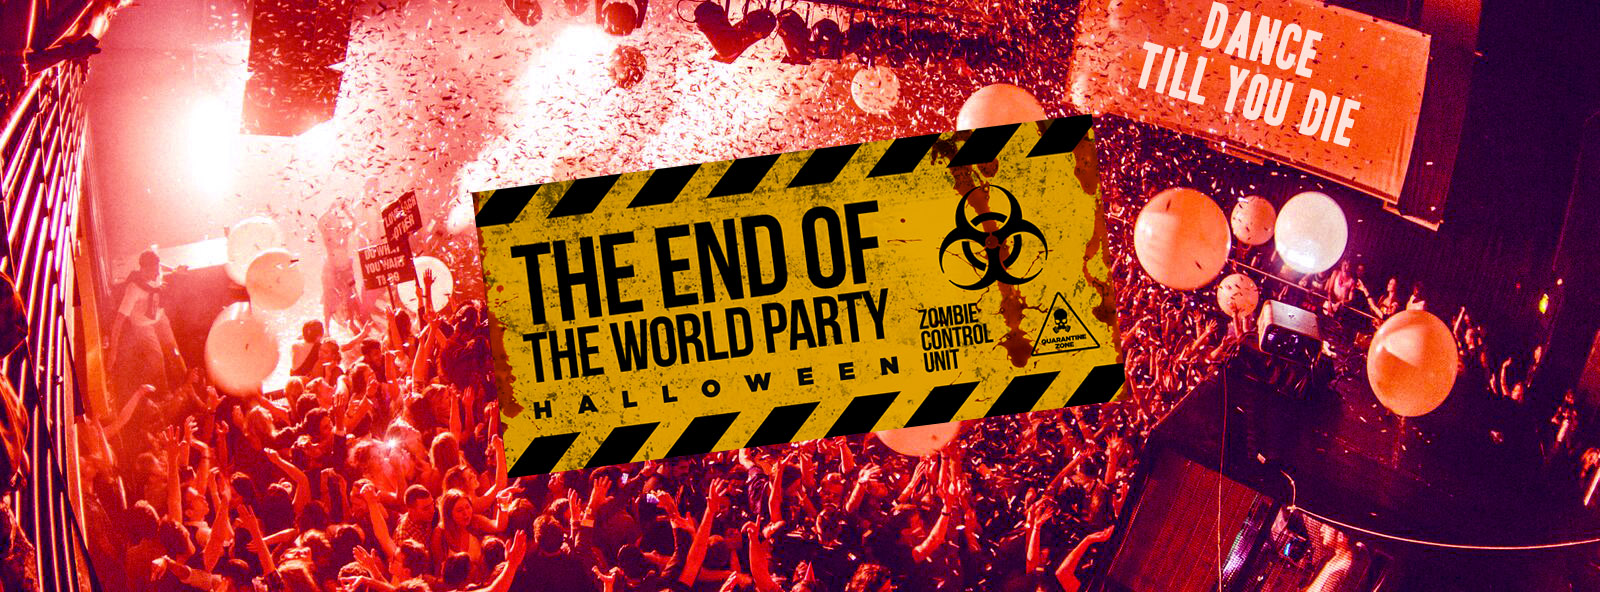 The End of the World Party - Halloween 2016